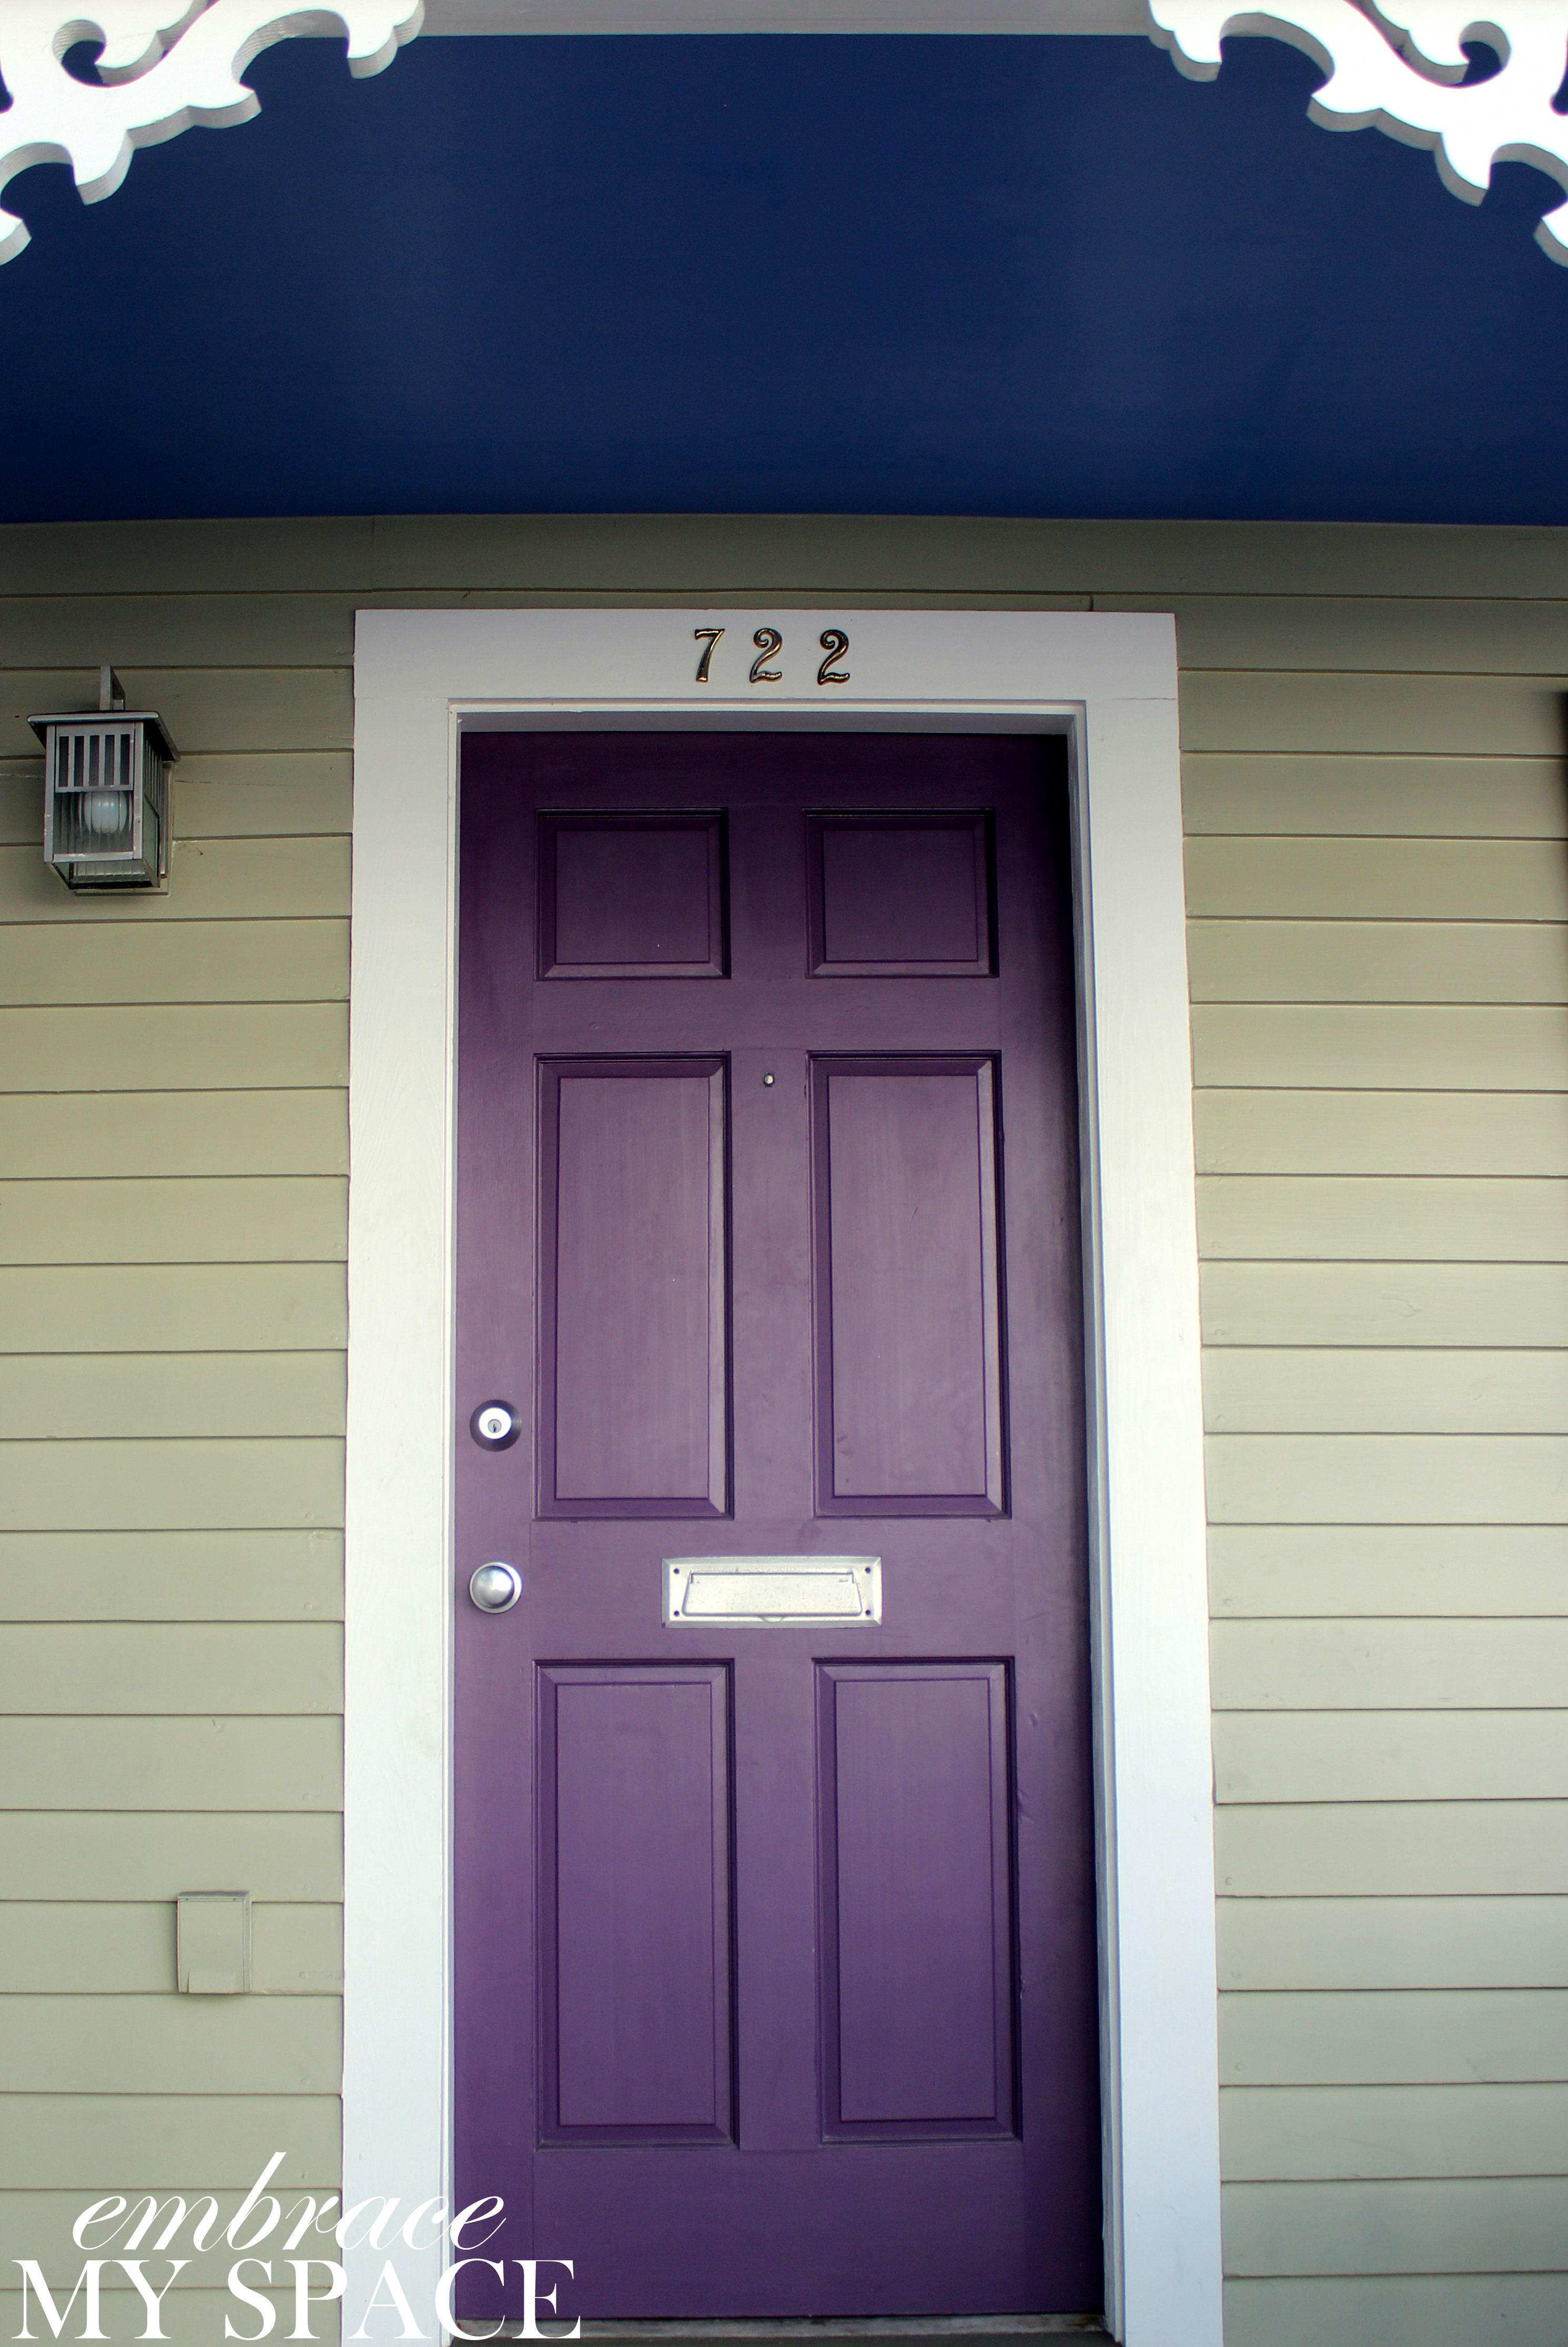 4461 #1F2640 Embrace My Space: Key West Front Doors image Colored Entry Doors 47132981